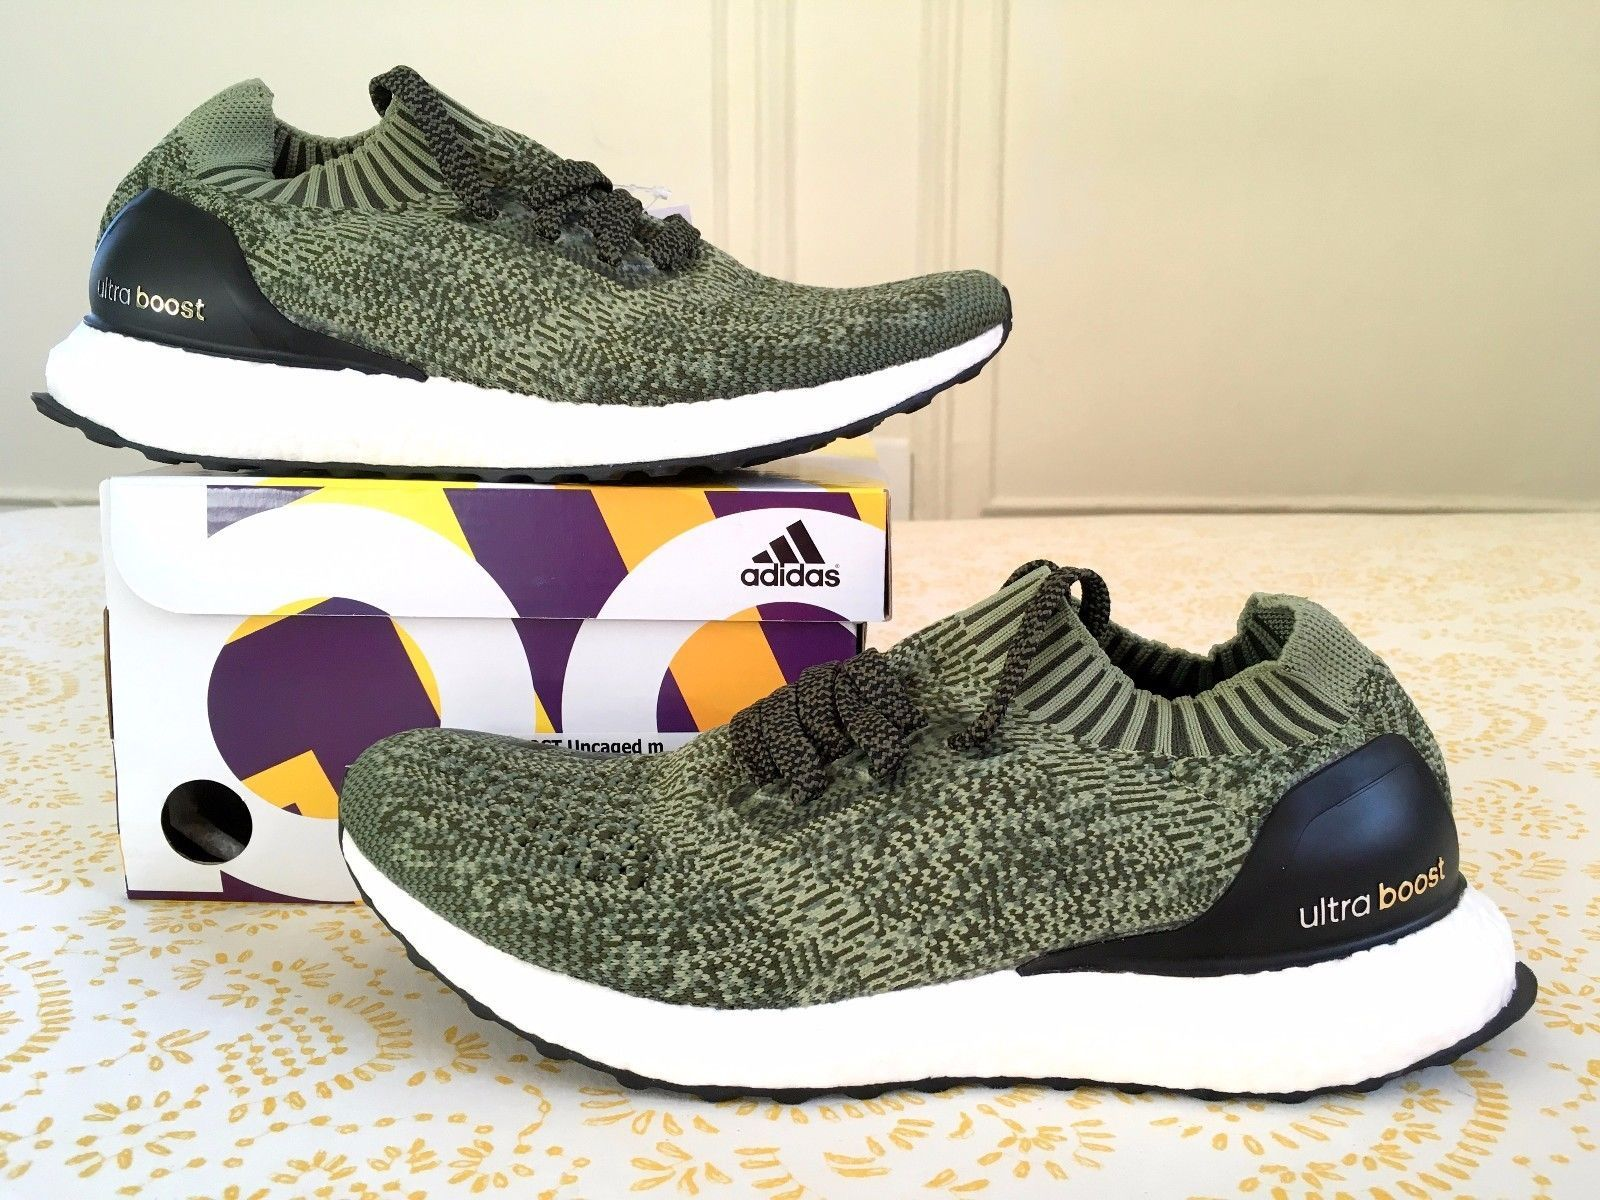 931666c8a7aaf Adidas Ultra Boost Uncaged M - Olive - Men s Size 7 US - NEW BB3901 Green  LTD